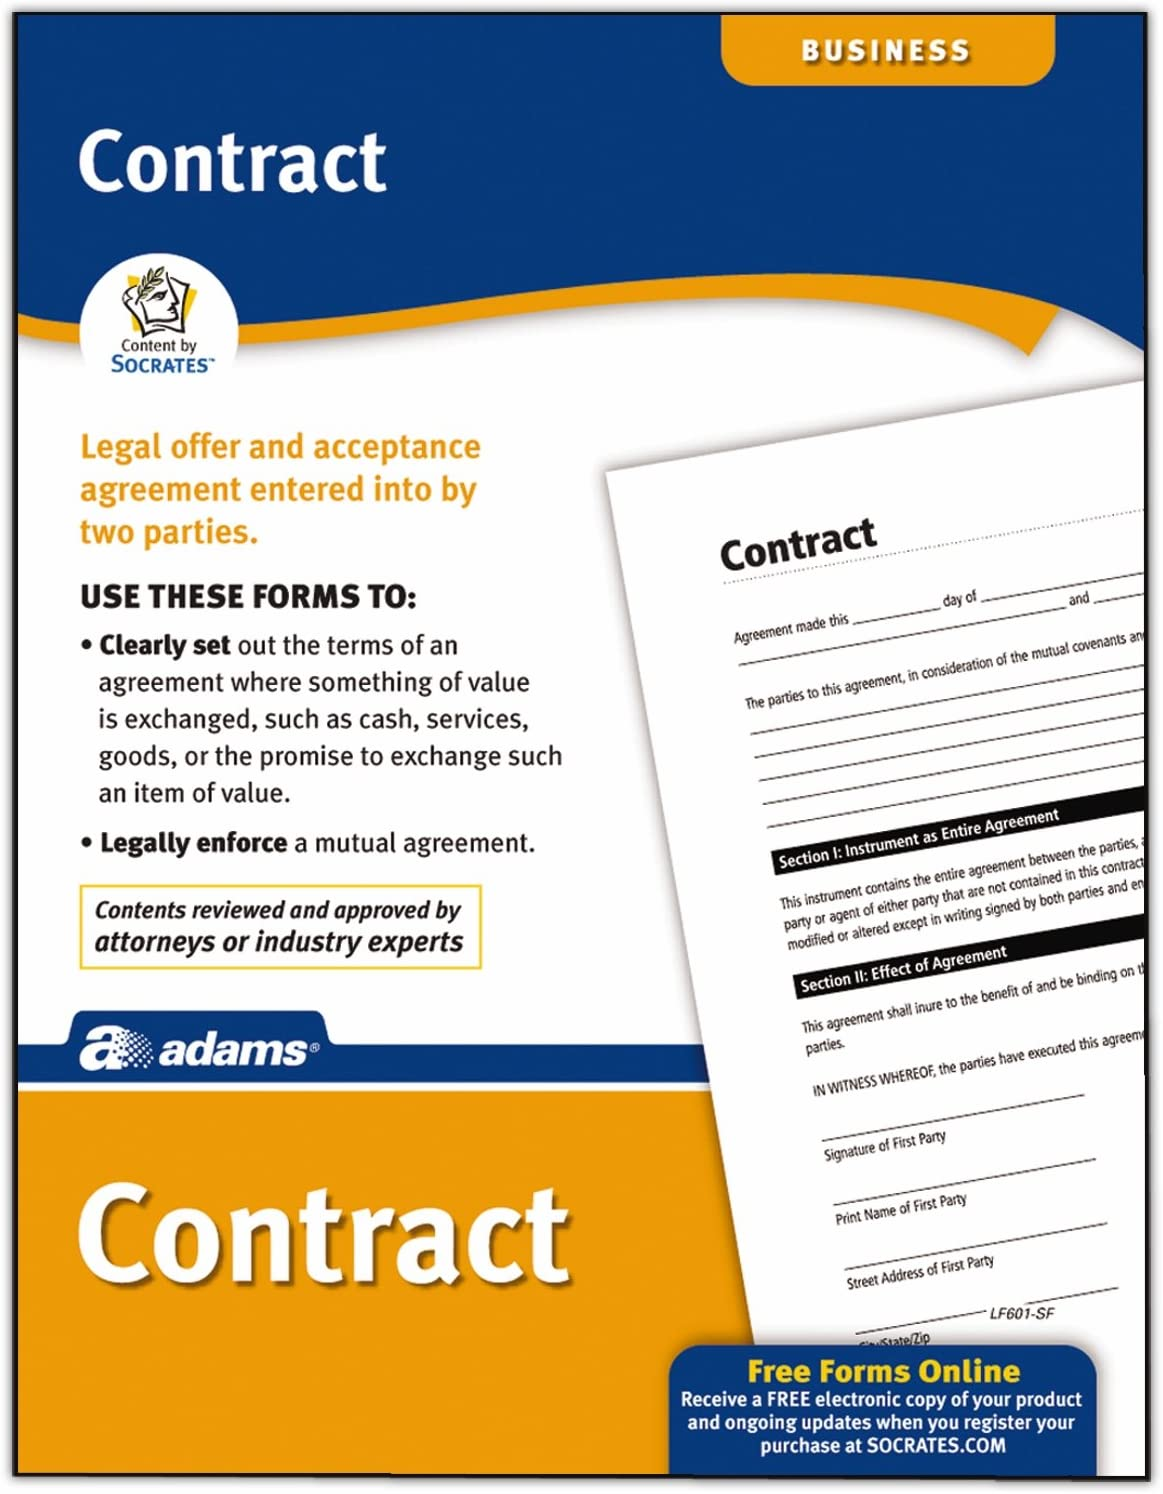 Adams Contract Form, 8.5 x 11 Inch, White (LF601)